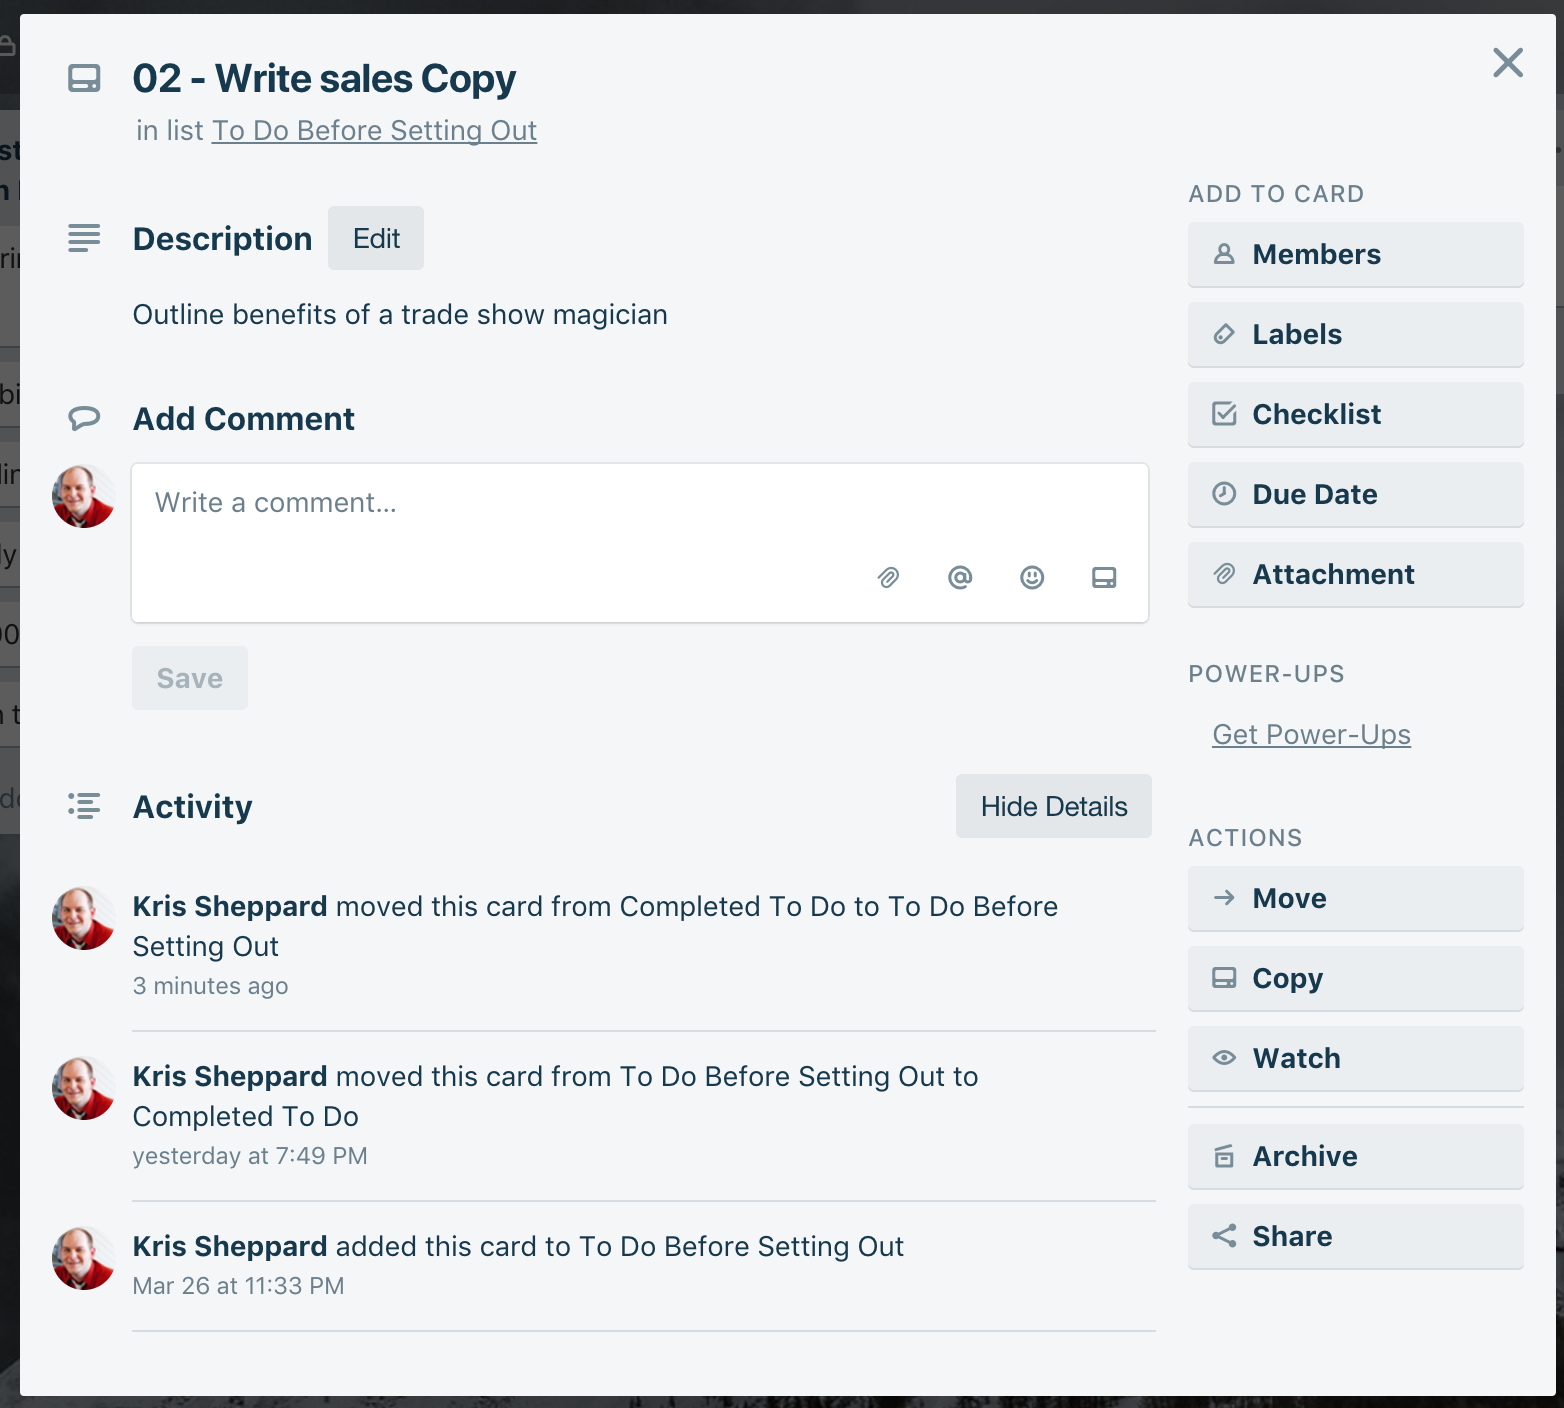 When you click on a card in Trello, this is what you get. Here you can drill down even further and really track details, adding comments, images, and even check lists.